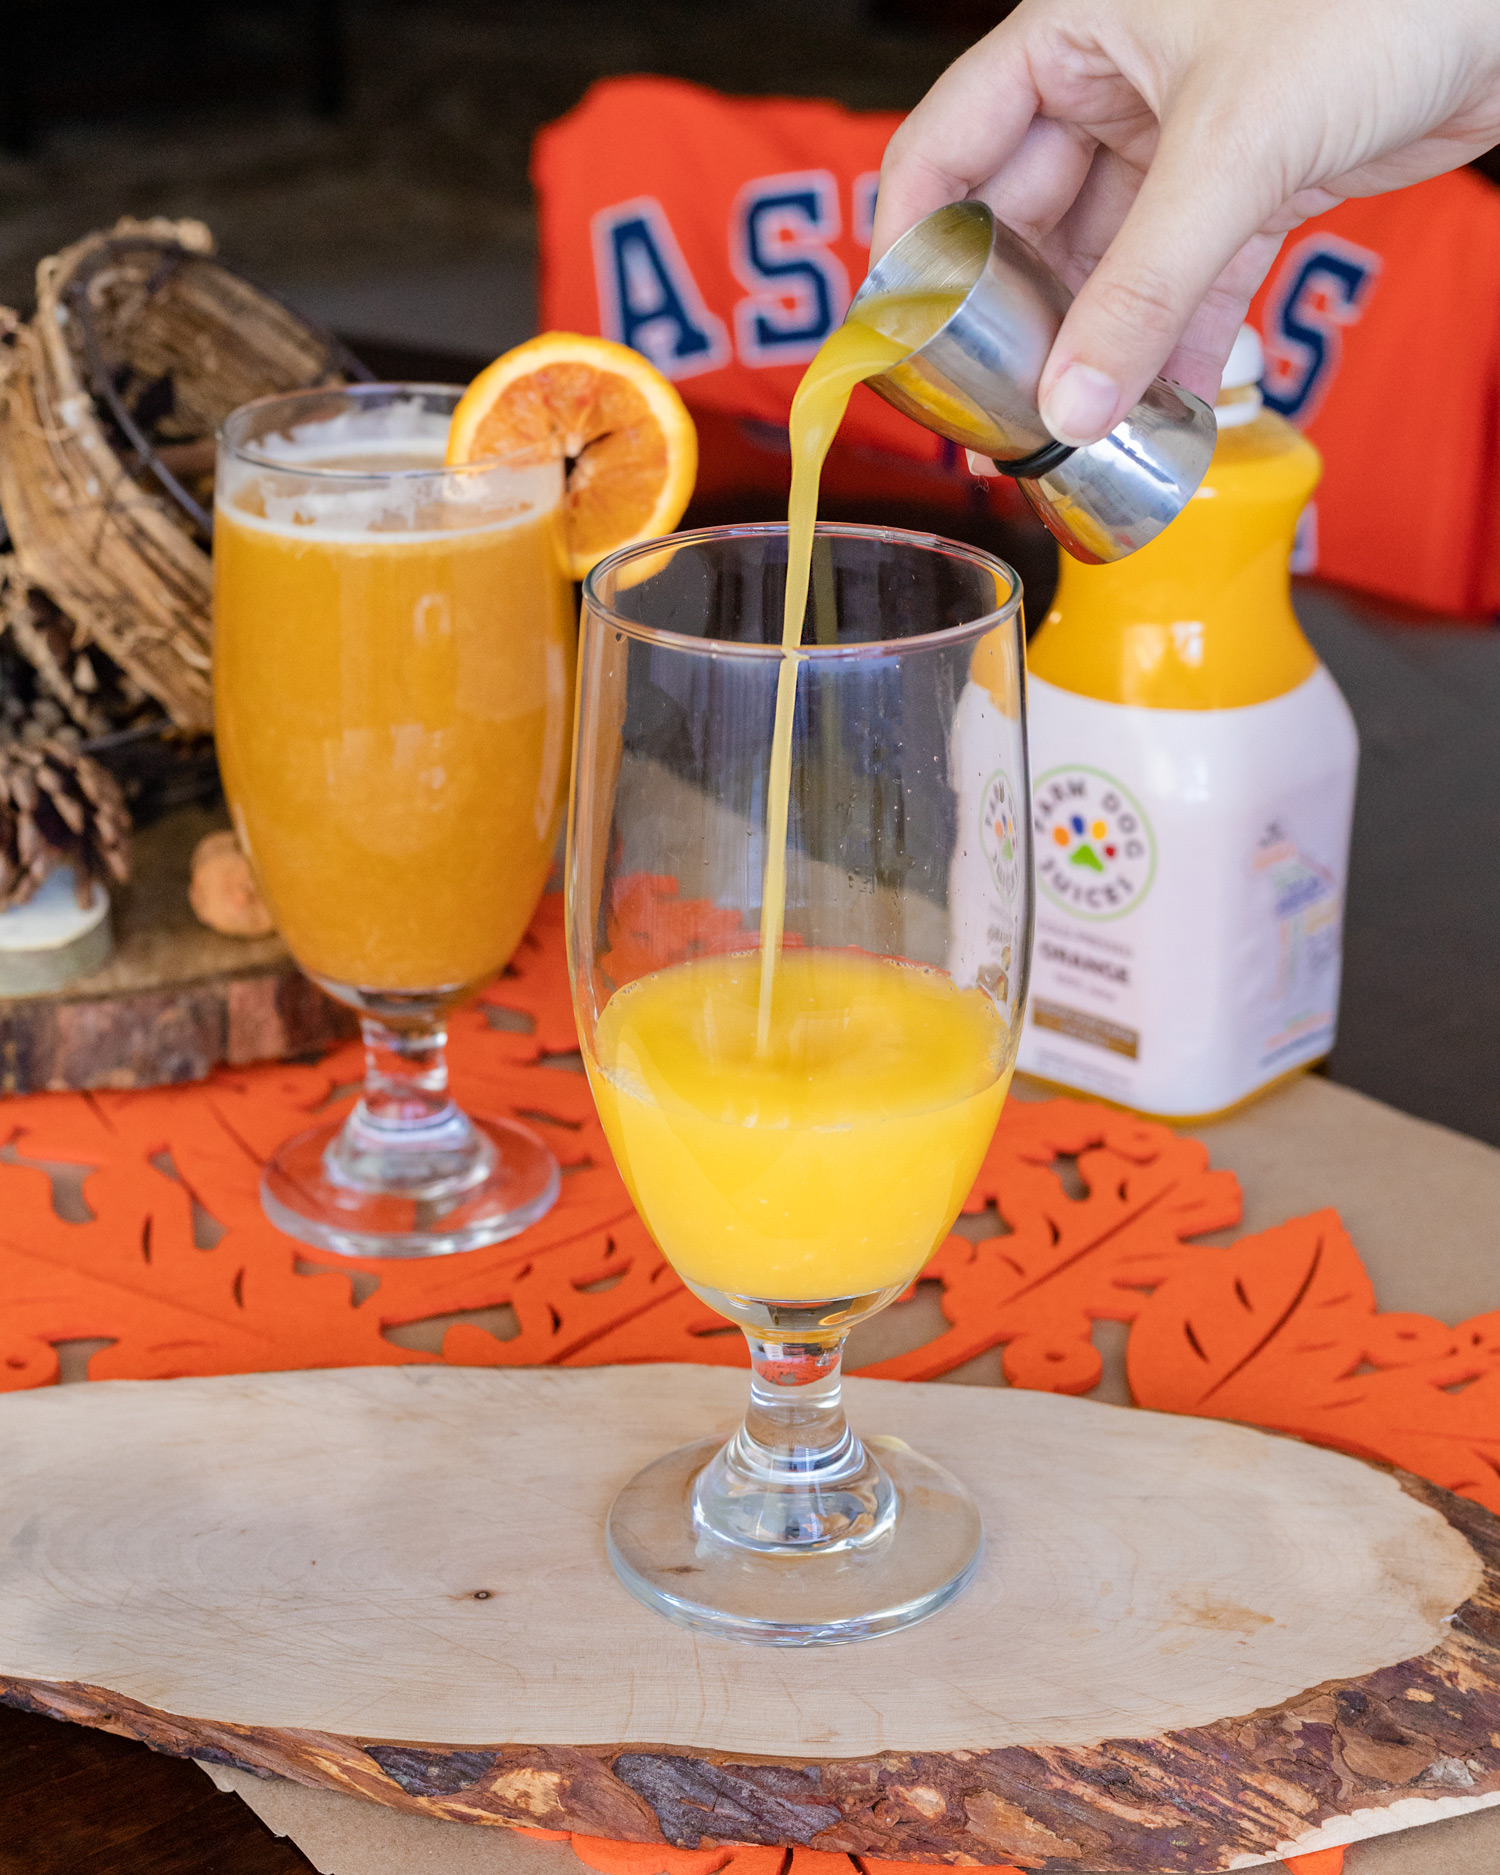 The Astros are going to the World Series so we're celebrating with a World Series cocktail. This beer cocktail using Karback's Crawford Bock, tequila, orange juice, and bitters for a beer cocktail that is a home run. #BeerCocktail #Beer #CocktailReecipe #ElleTalk #DrinkRecipe #Tequila #Vodka